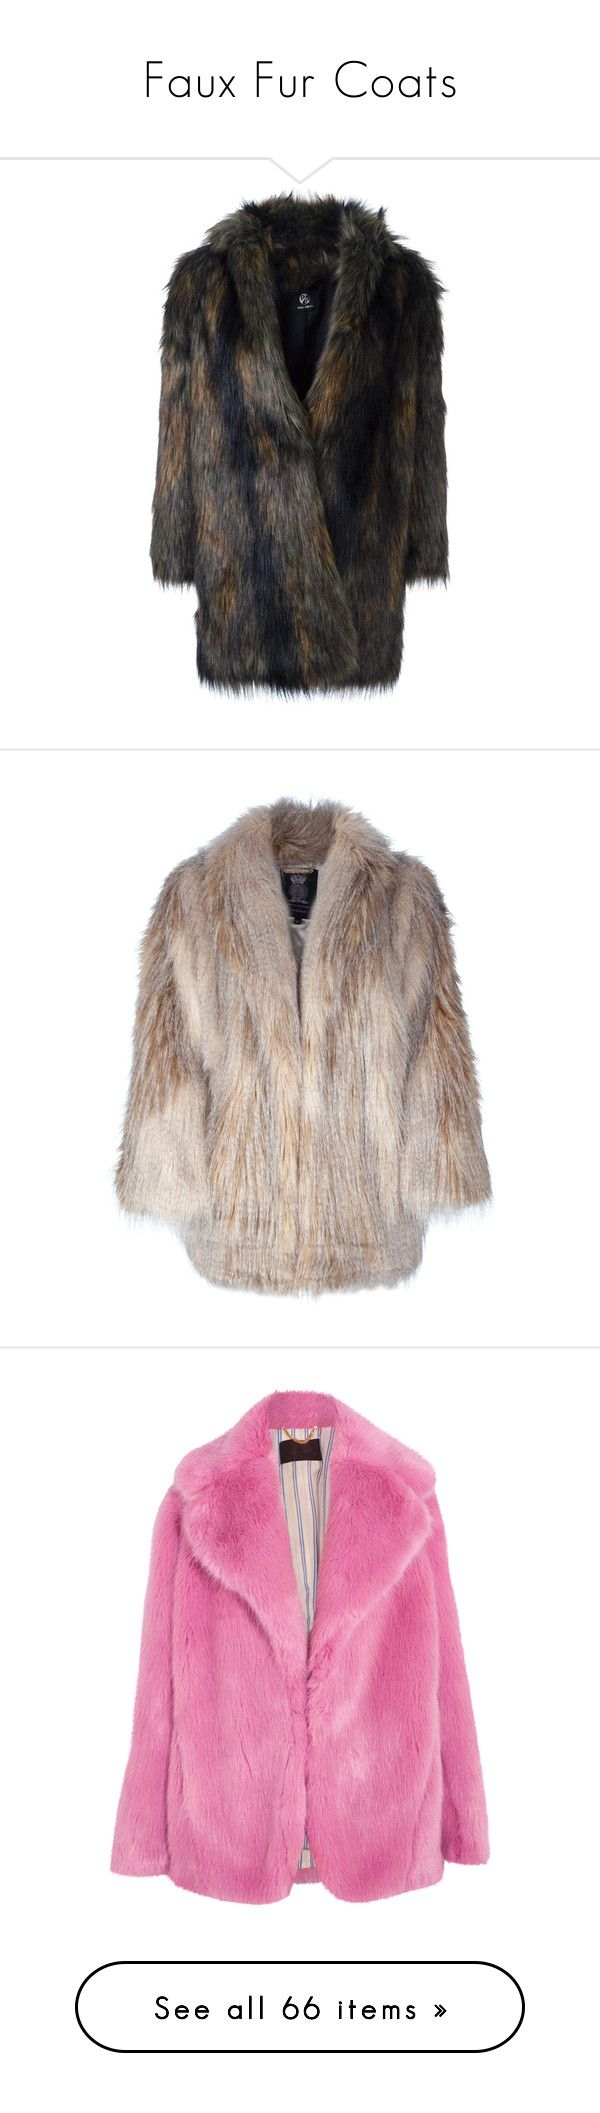 """Faux Fur Coats"" by robinnnnnnn ❤ liked on Polyvore featuring outerwear, coats, grey, gray faux fur coat, grey coat, paul smith coat, paul smith, faux fur coat, jackets and fur"